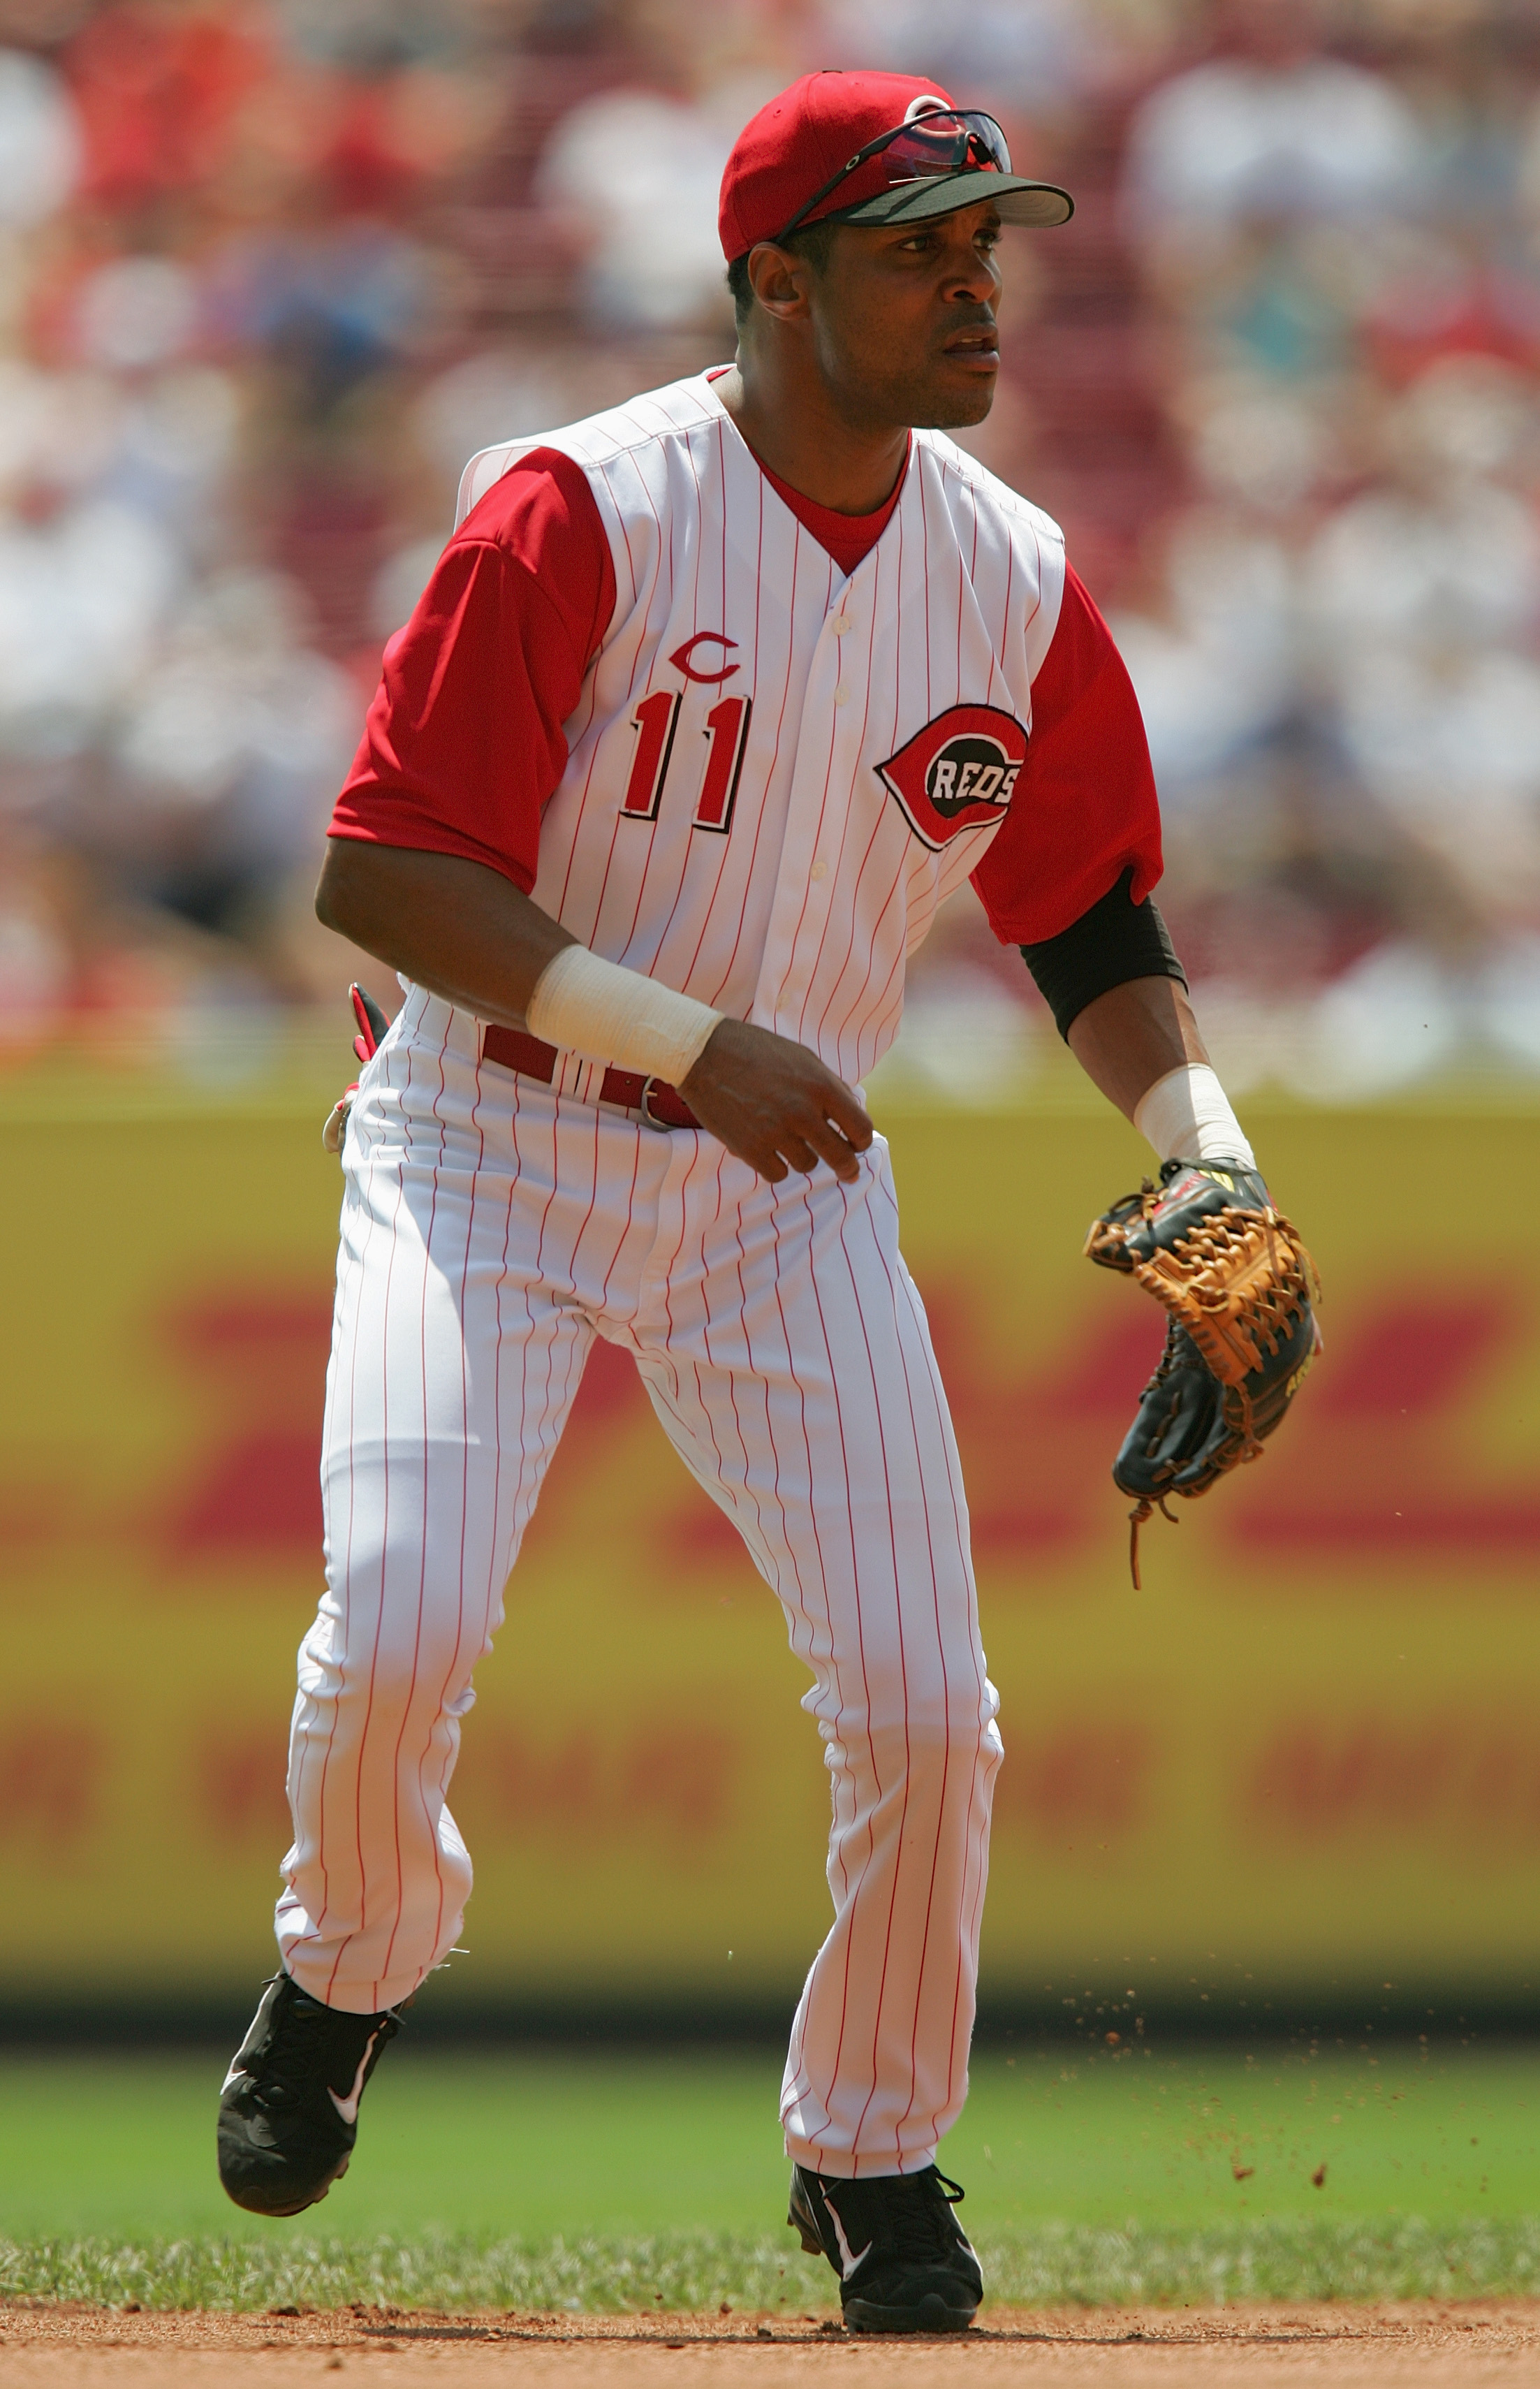 CINCINNATI, OH - JUNE 17:  Barry Larkin #11 of the Cincinnati Reds focuses on home plate as he prepares for a play during the interleague game against the Texas Rangers at the Great American Ball Park on June 17, 2004 in Cincinnati, Ohio.  The Reds defeat